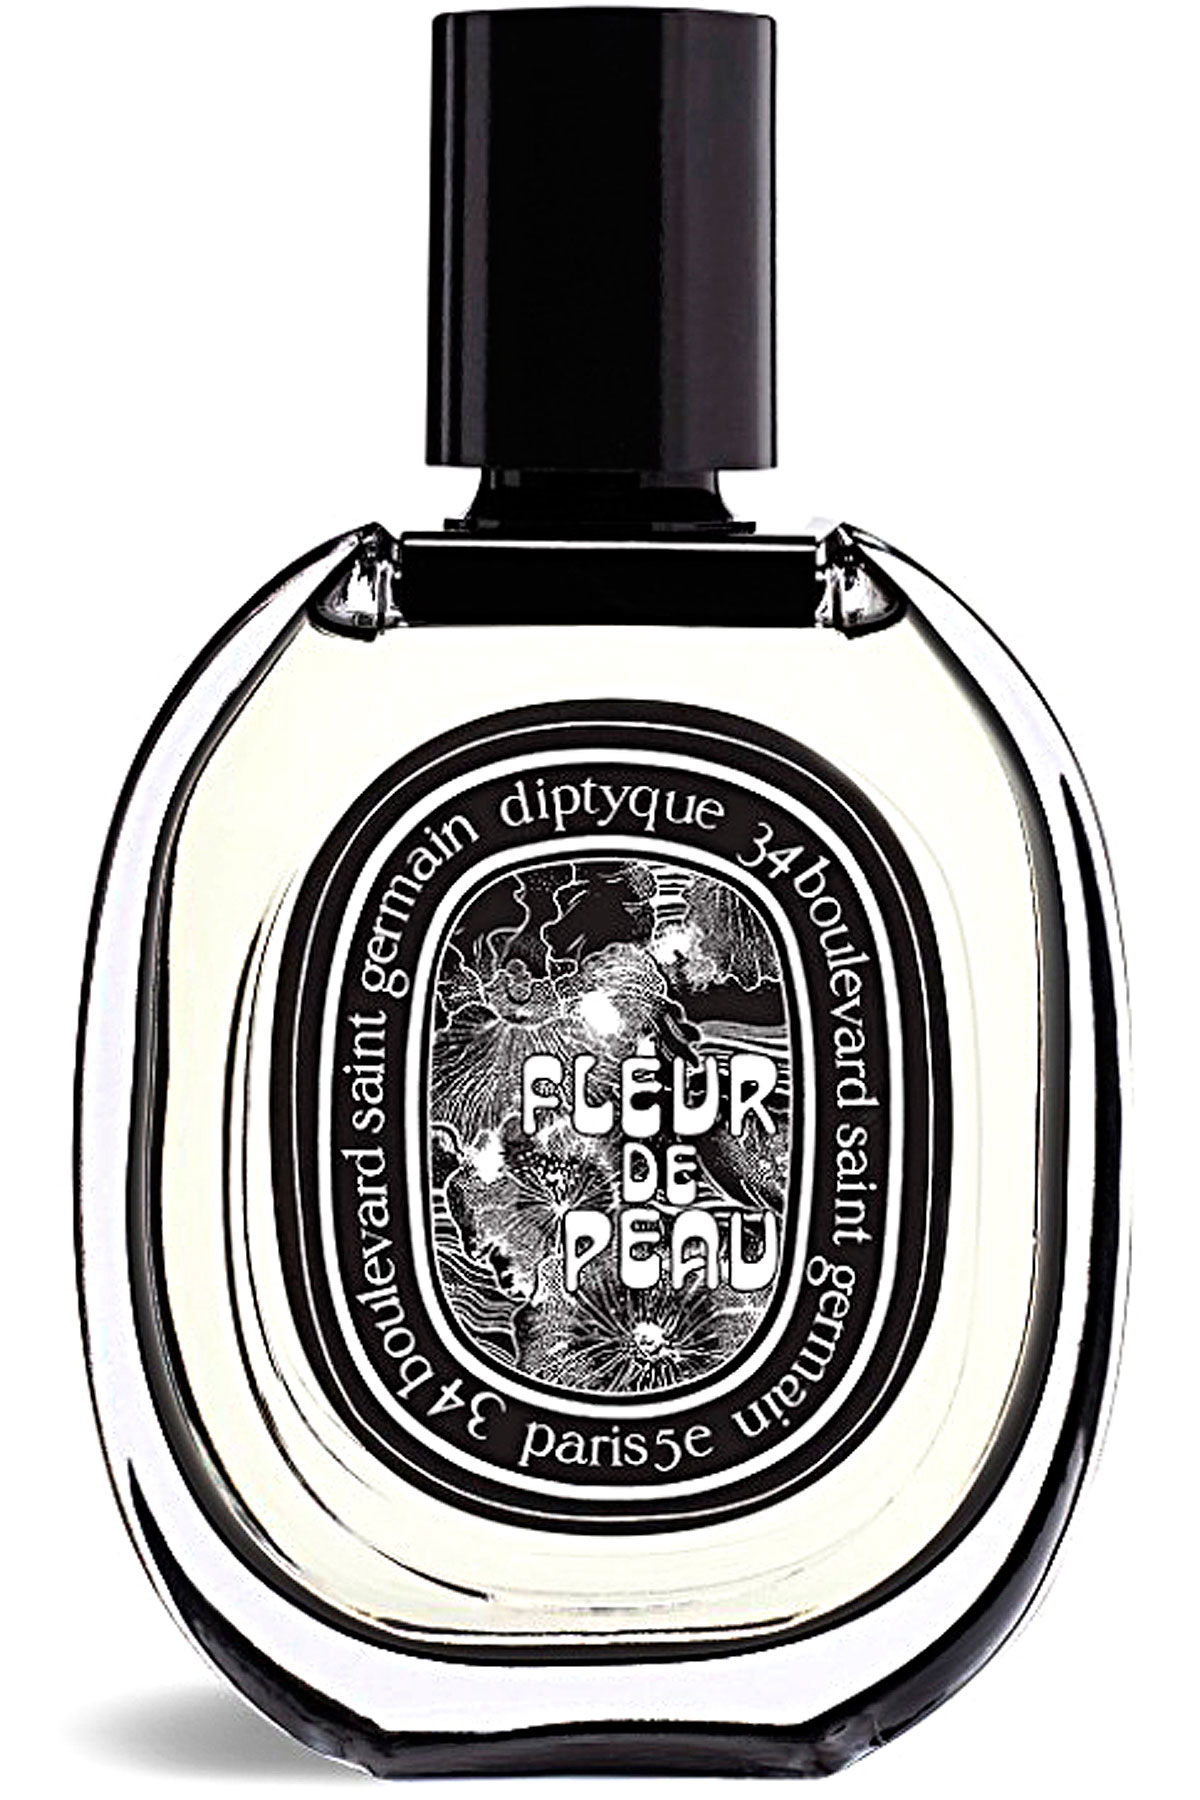 Diptyque Fragrances for Men, Fleur De Peau - Eau De Parfum - 75 Ml, 2019, 75 ml